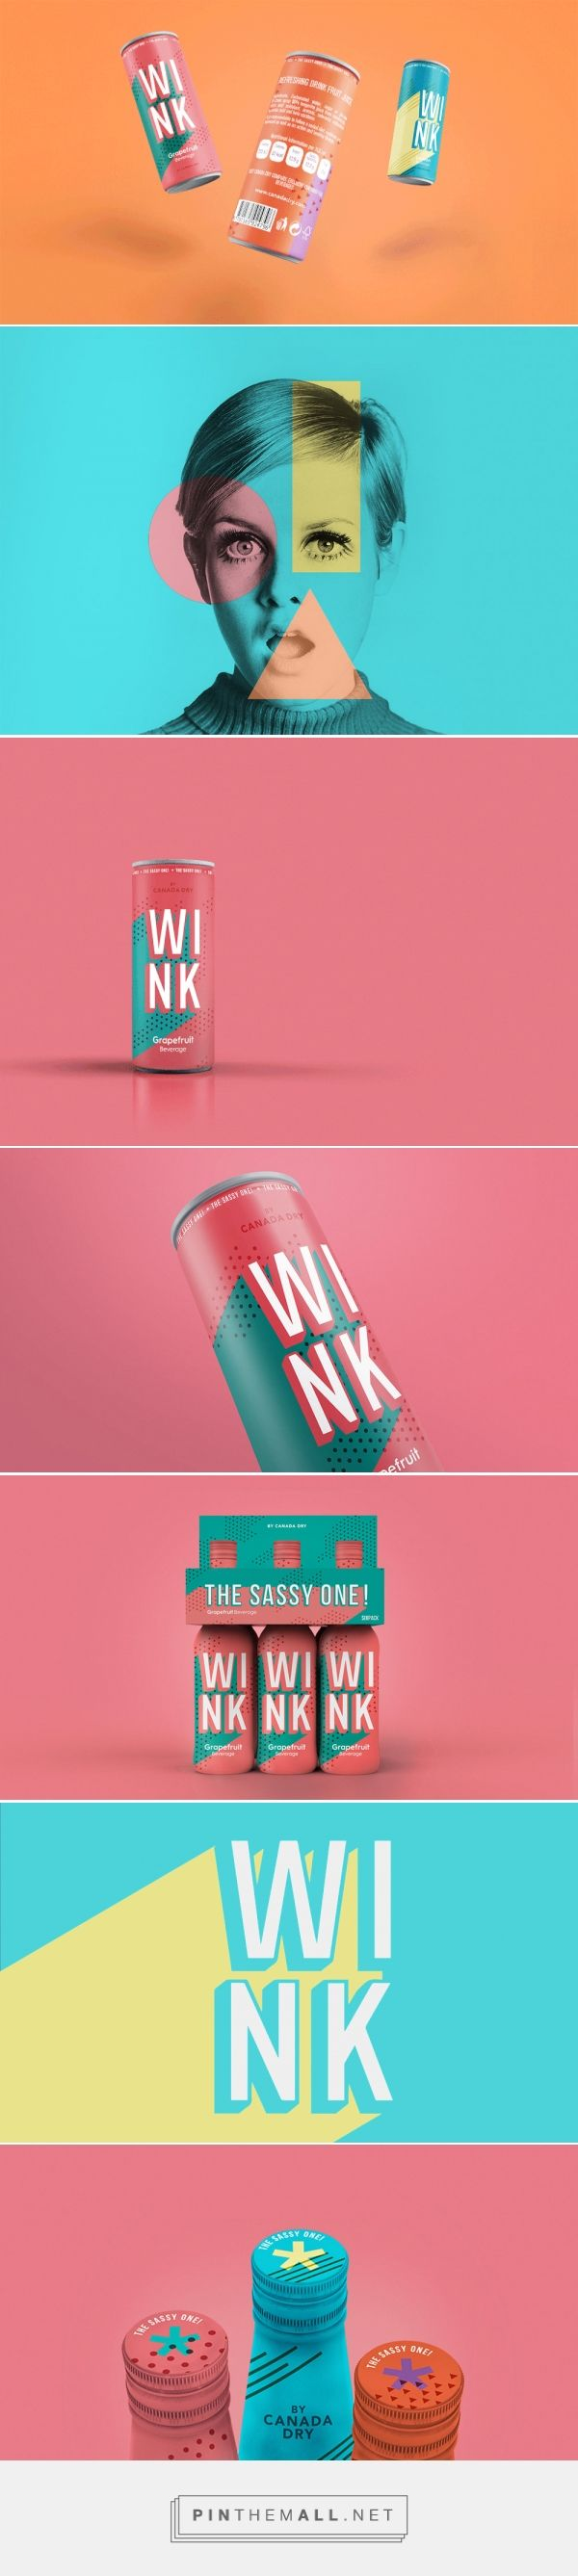 Travel Back to the 60s with the Process for Wink Beverages Concept — The Dieline - Branding & Packaging Design - created via https://pinthemall.net